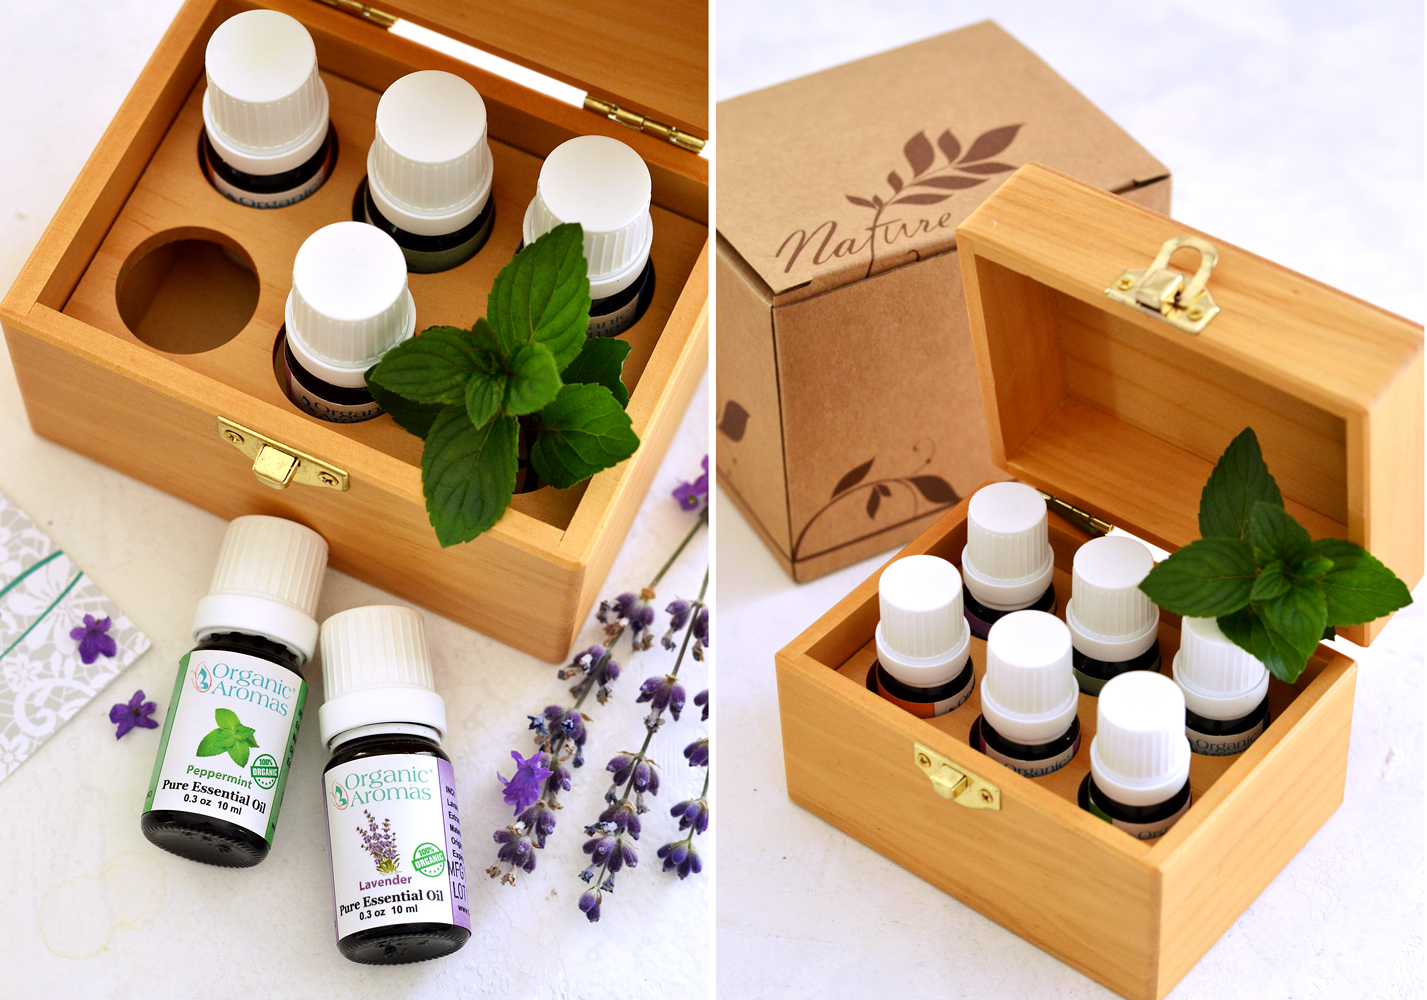 Diffusing Essential oils with The Nebulizing Diffuser ... it's like a dream come true! Learn all about it!